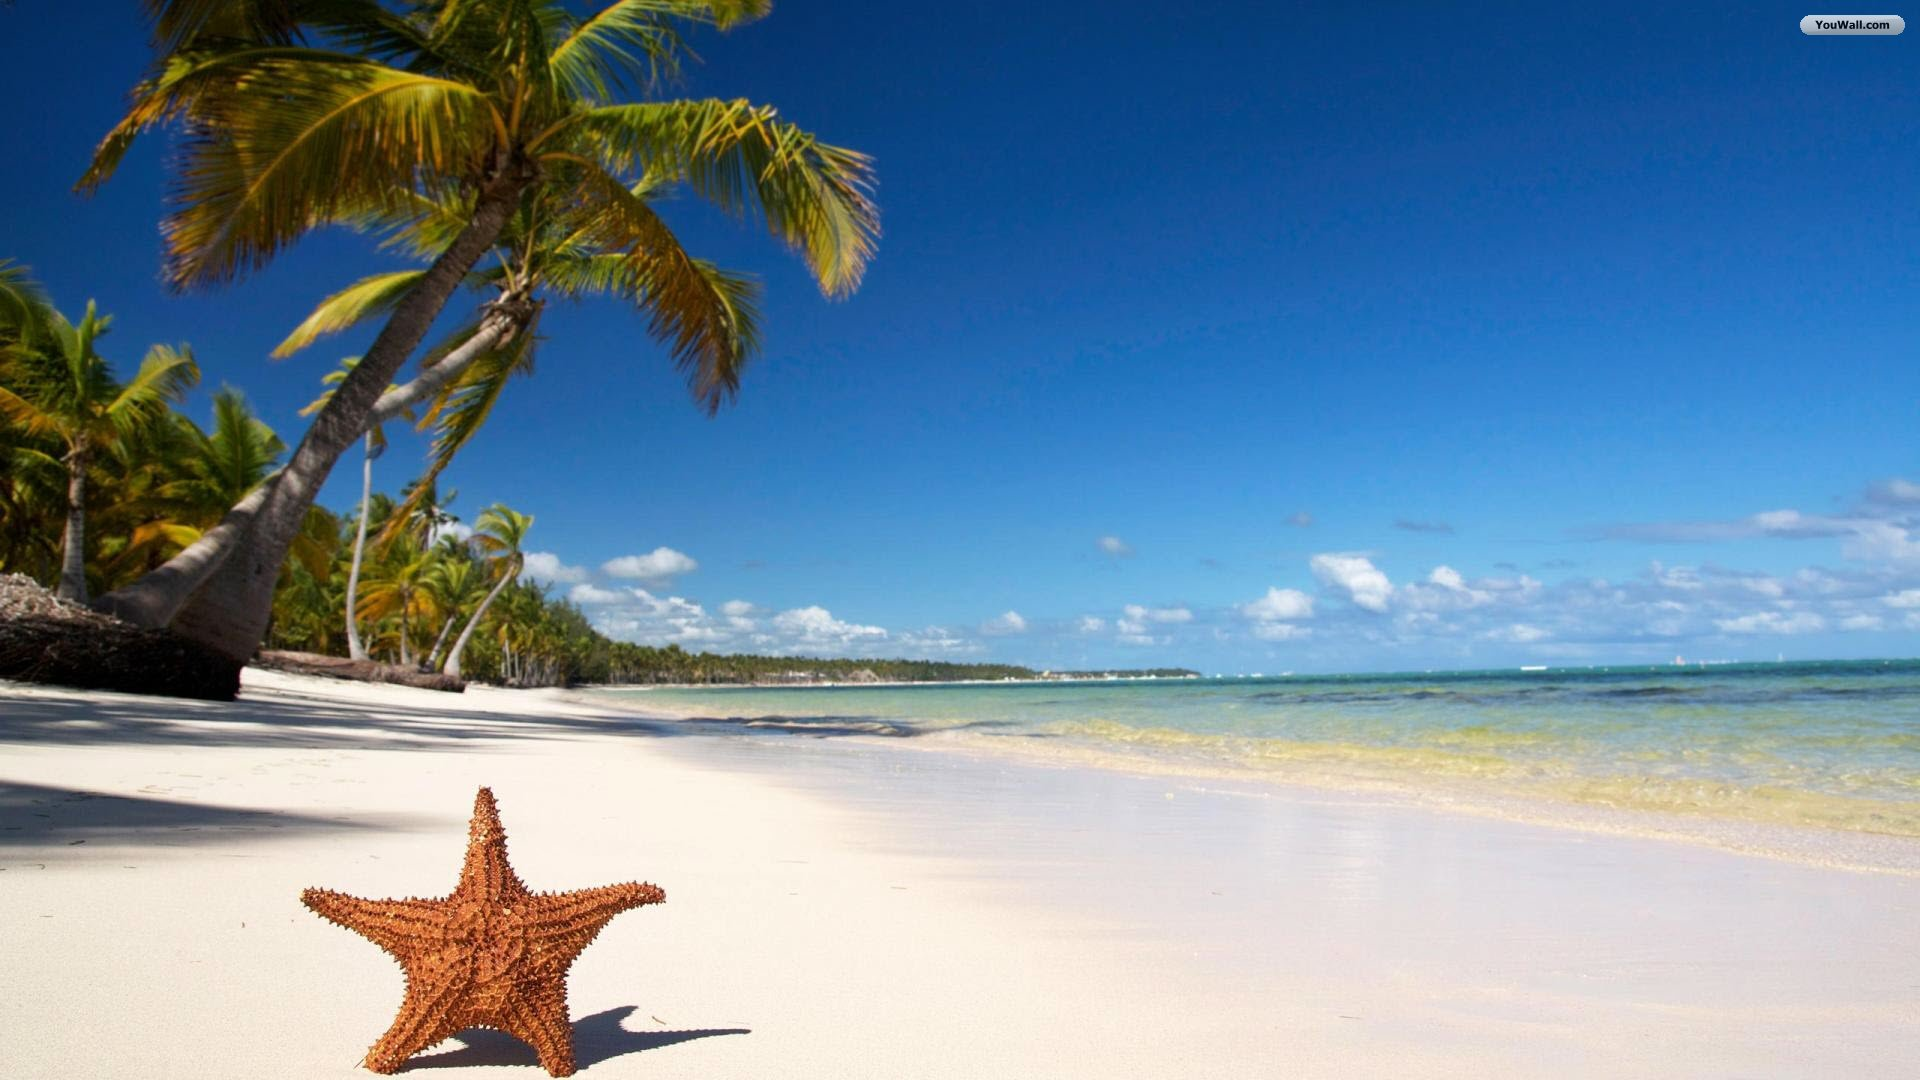 Beach Wallpapers star fish